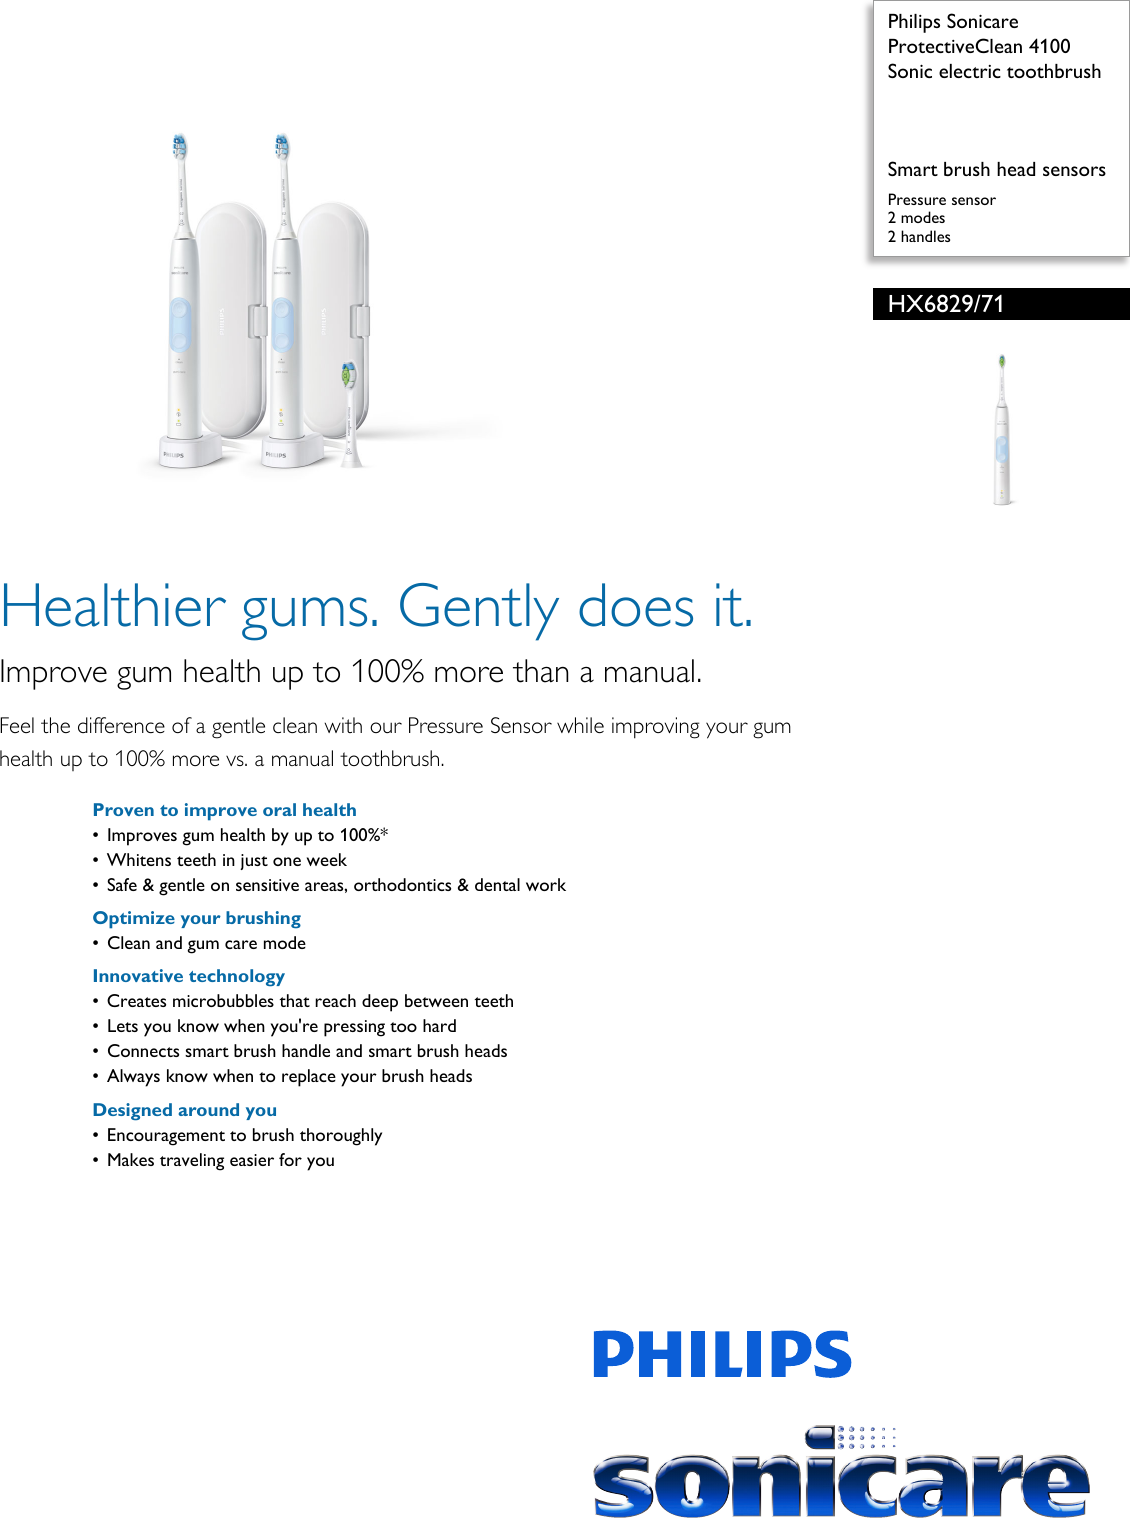 philips hx6829 71 sonic electric toothbrush user manual leaflet rh usermanual wiki philips sonicare service manual philips sonicare service manual